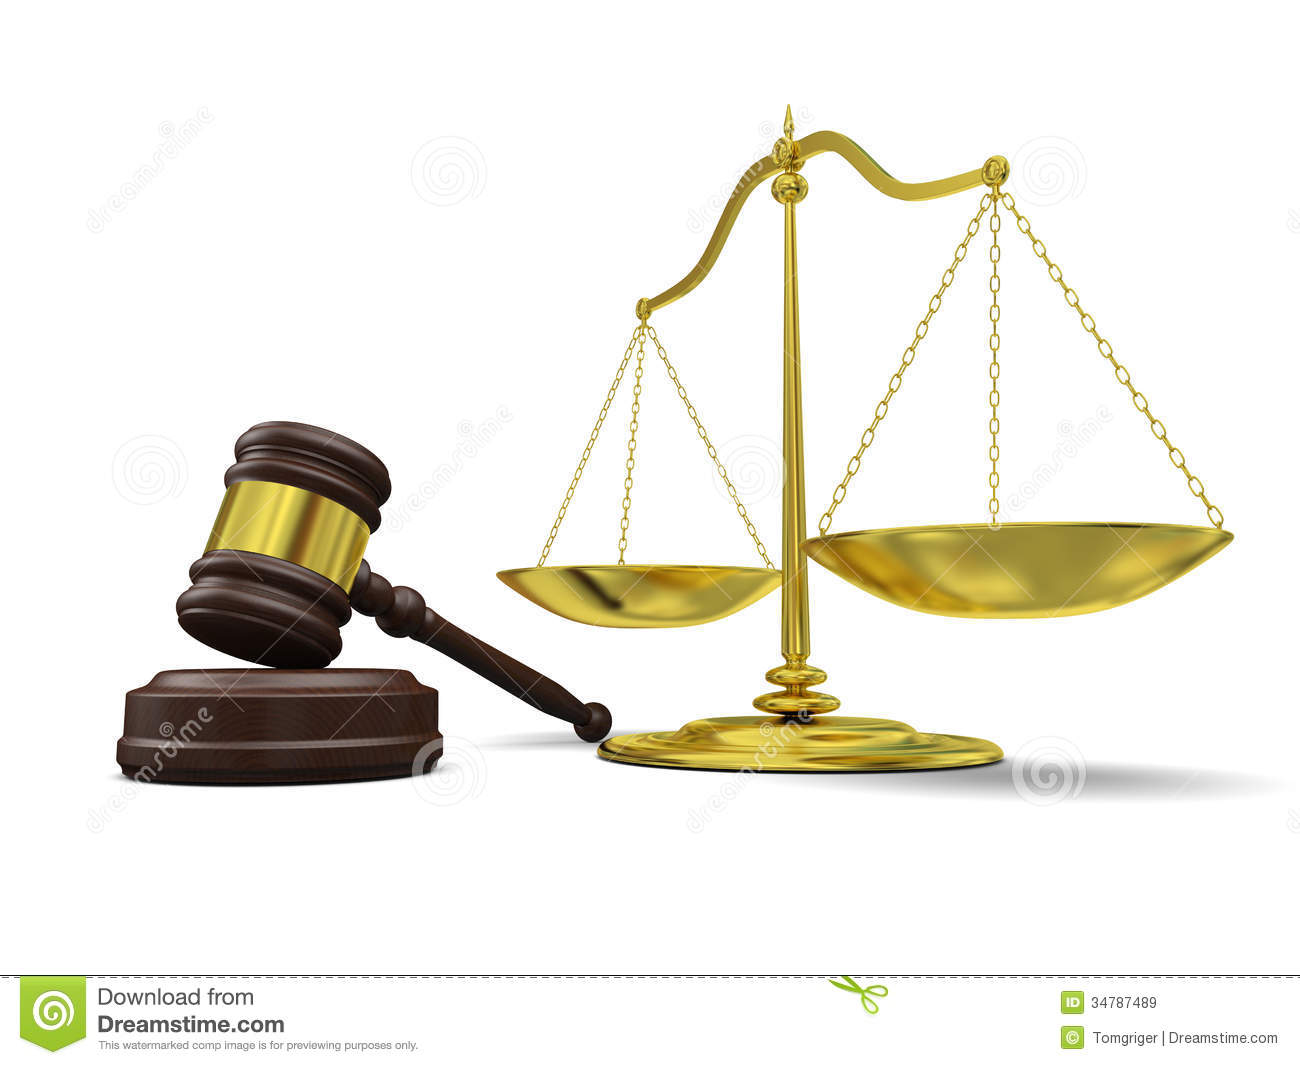 legal symbols clipart clipart suggest Free Silhouette Clip Art Scales of Justice Unequal Scales of Justice Clip Art Free